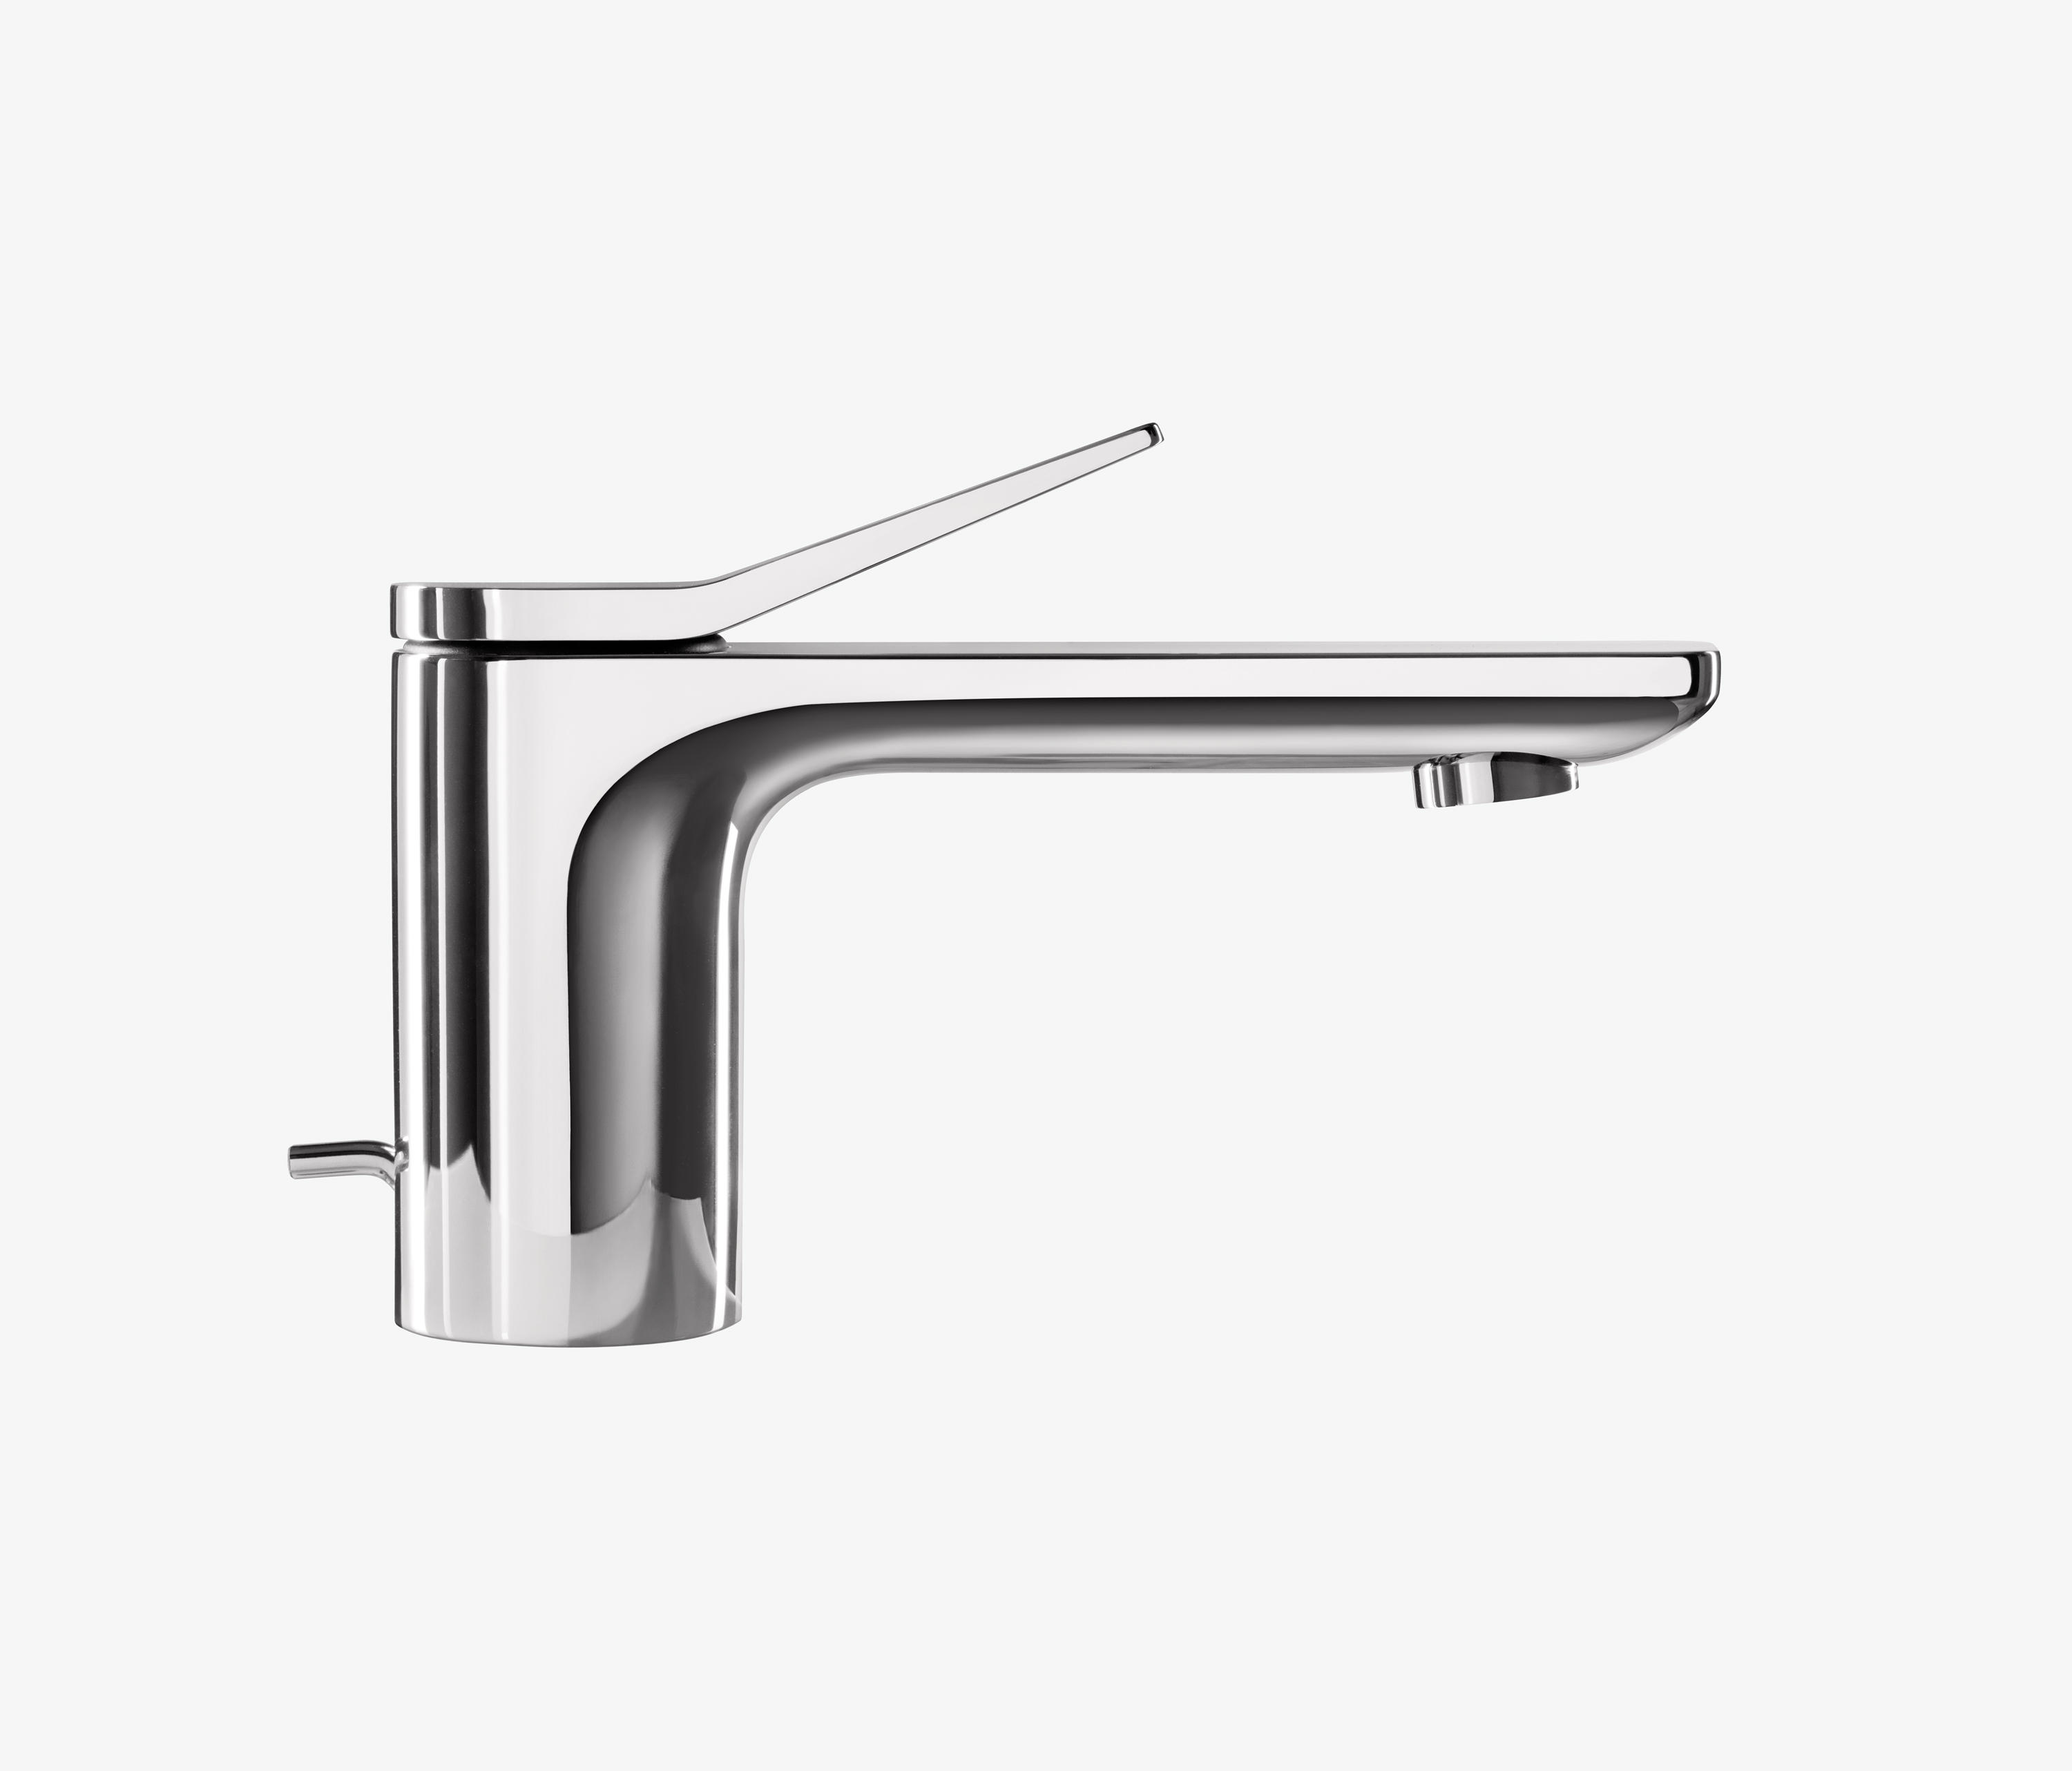 products fitting dornbracht us gallery spa bath design en faucet mem and product